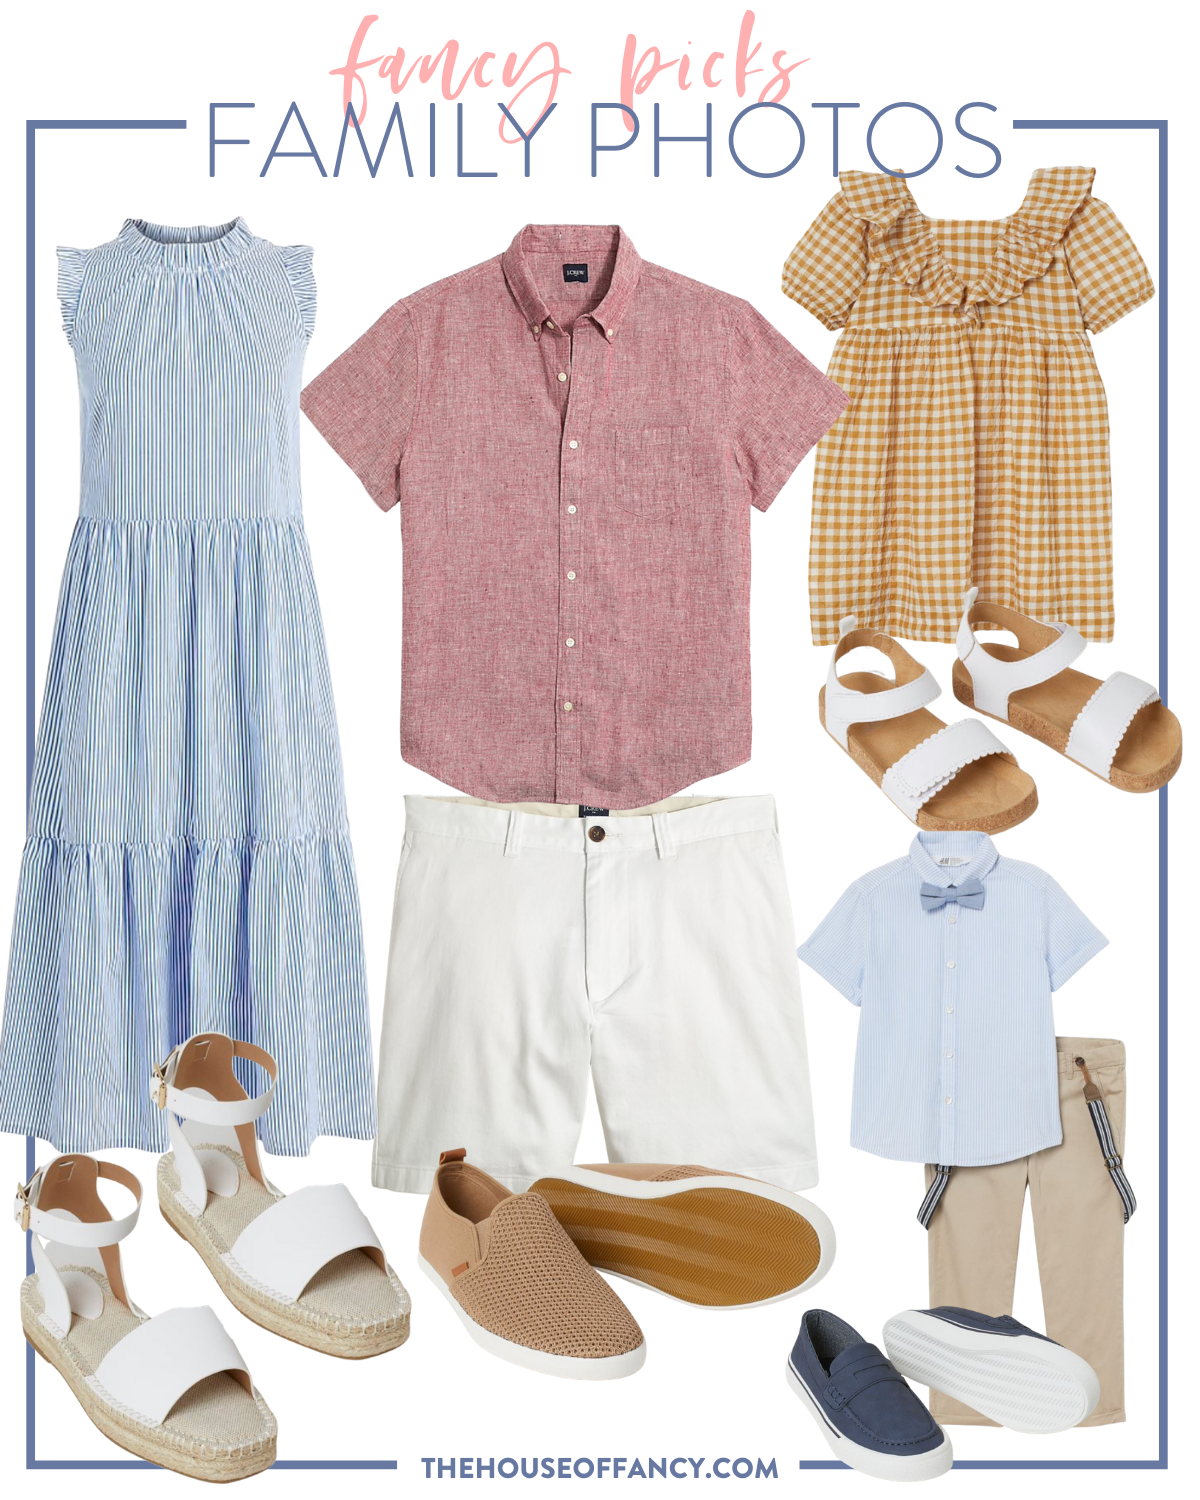 fancy Ashley family photo looks   Family Photo Outfits by popular Houston fashion blog, The House of Fancy: collage image of a blue stripe tiered maxi dress, red button up shirt, white shorts, white espadrilles, tan sneakers, white strap sandals, blue button up shirt, orange gingham dress, blue boater sneakers, and tan pants with blue suspenders.